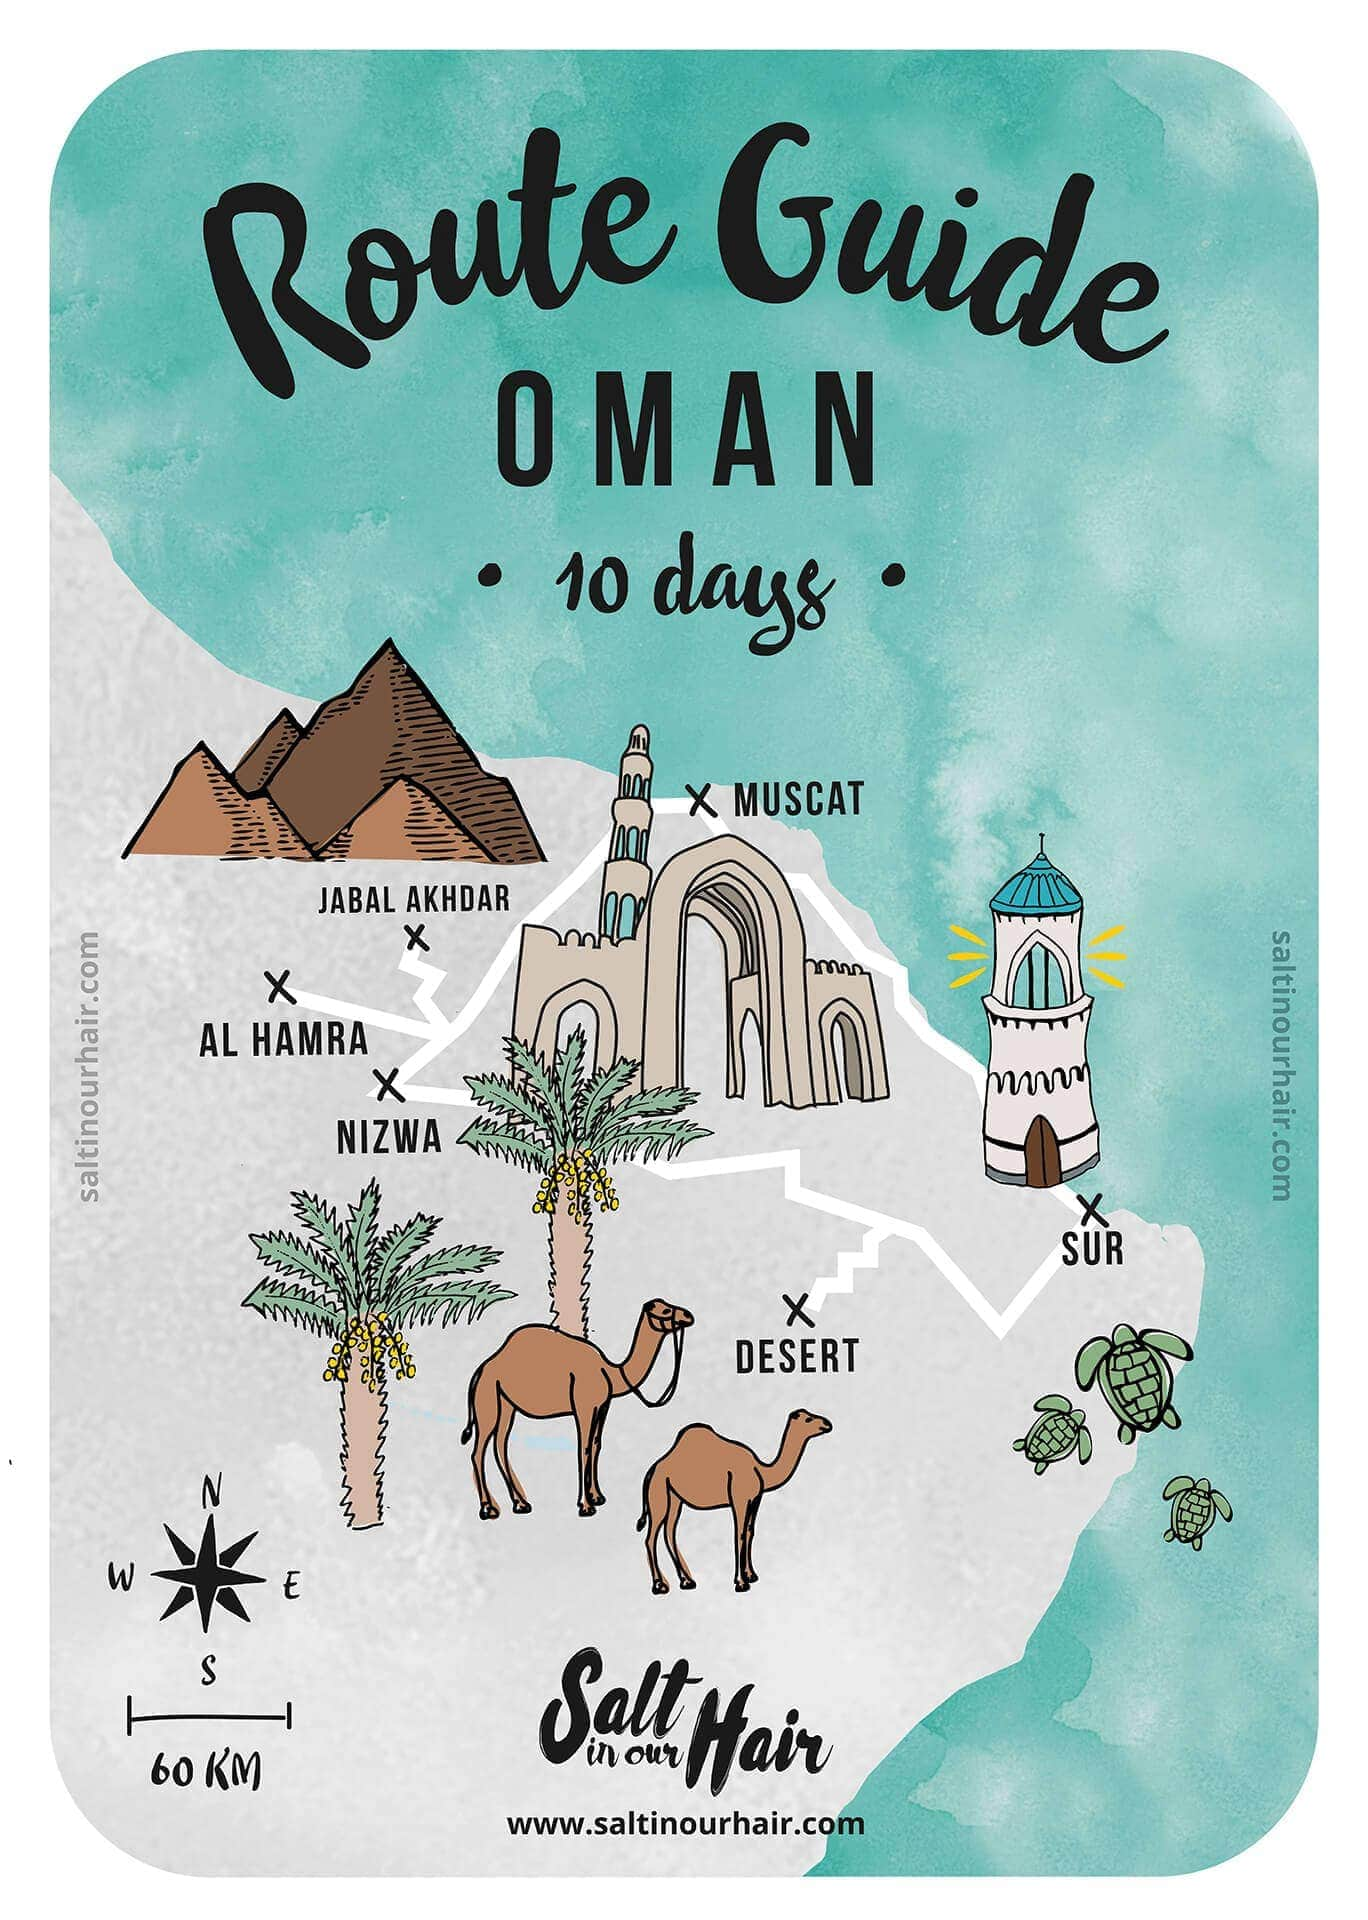 Oman route guide map 10 days